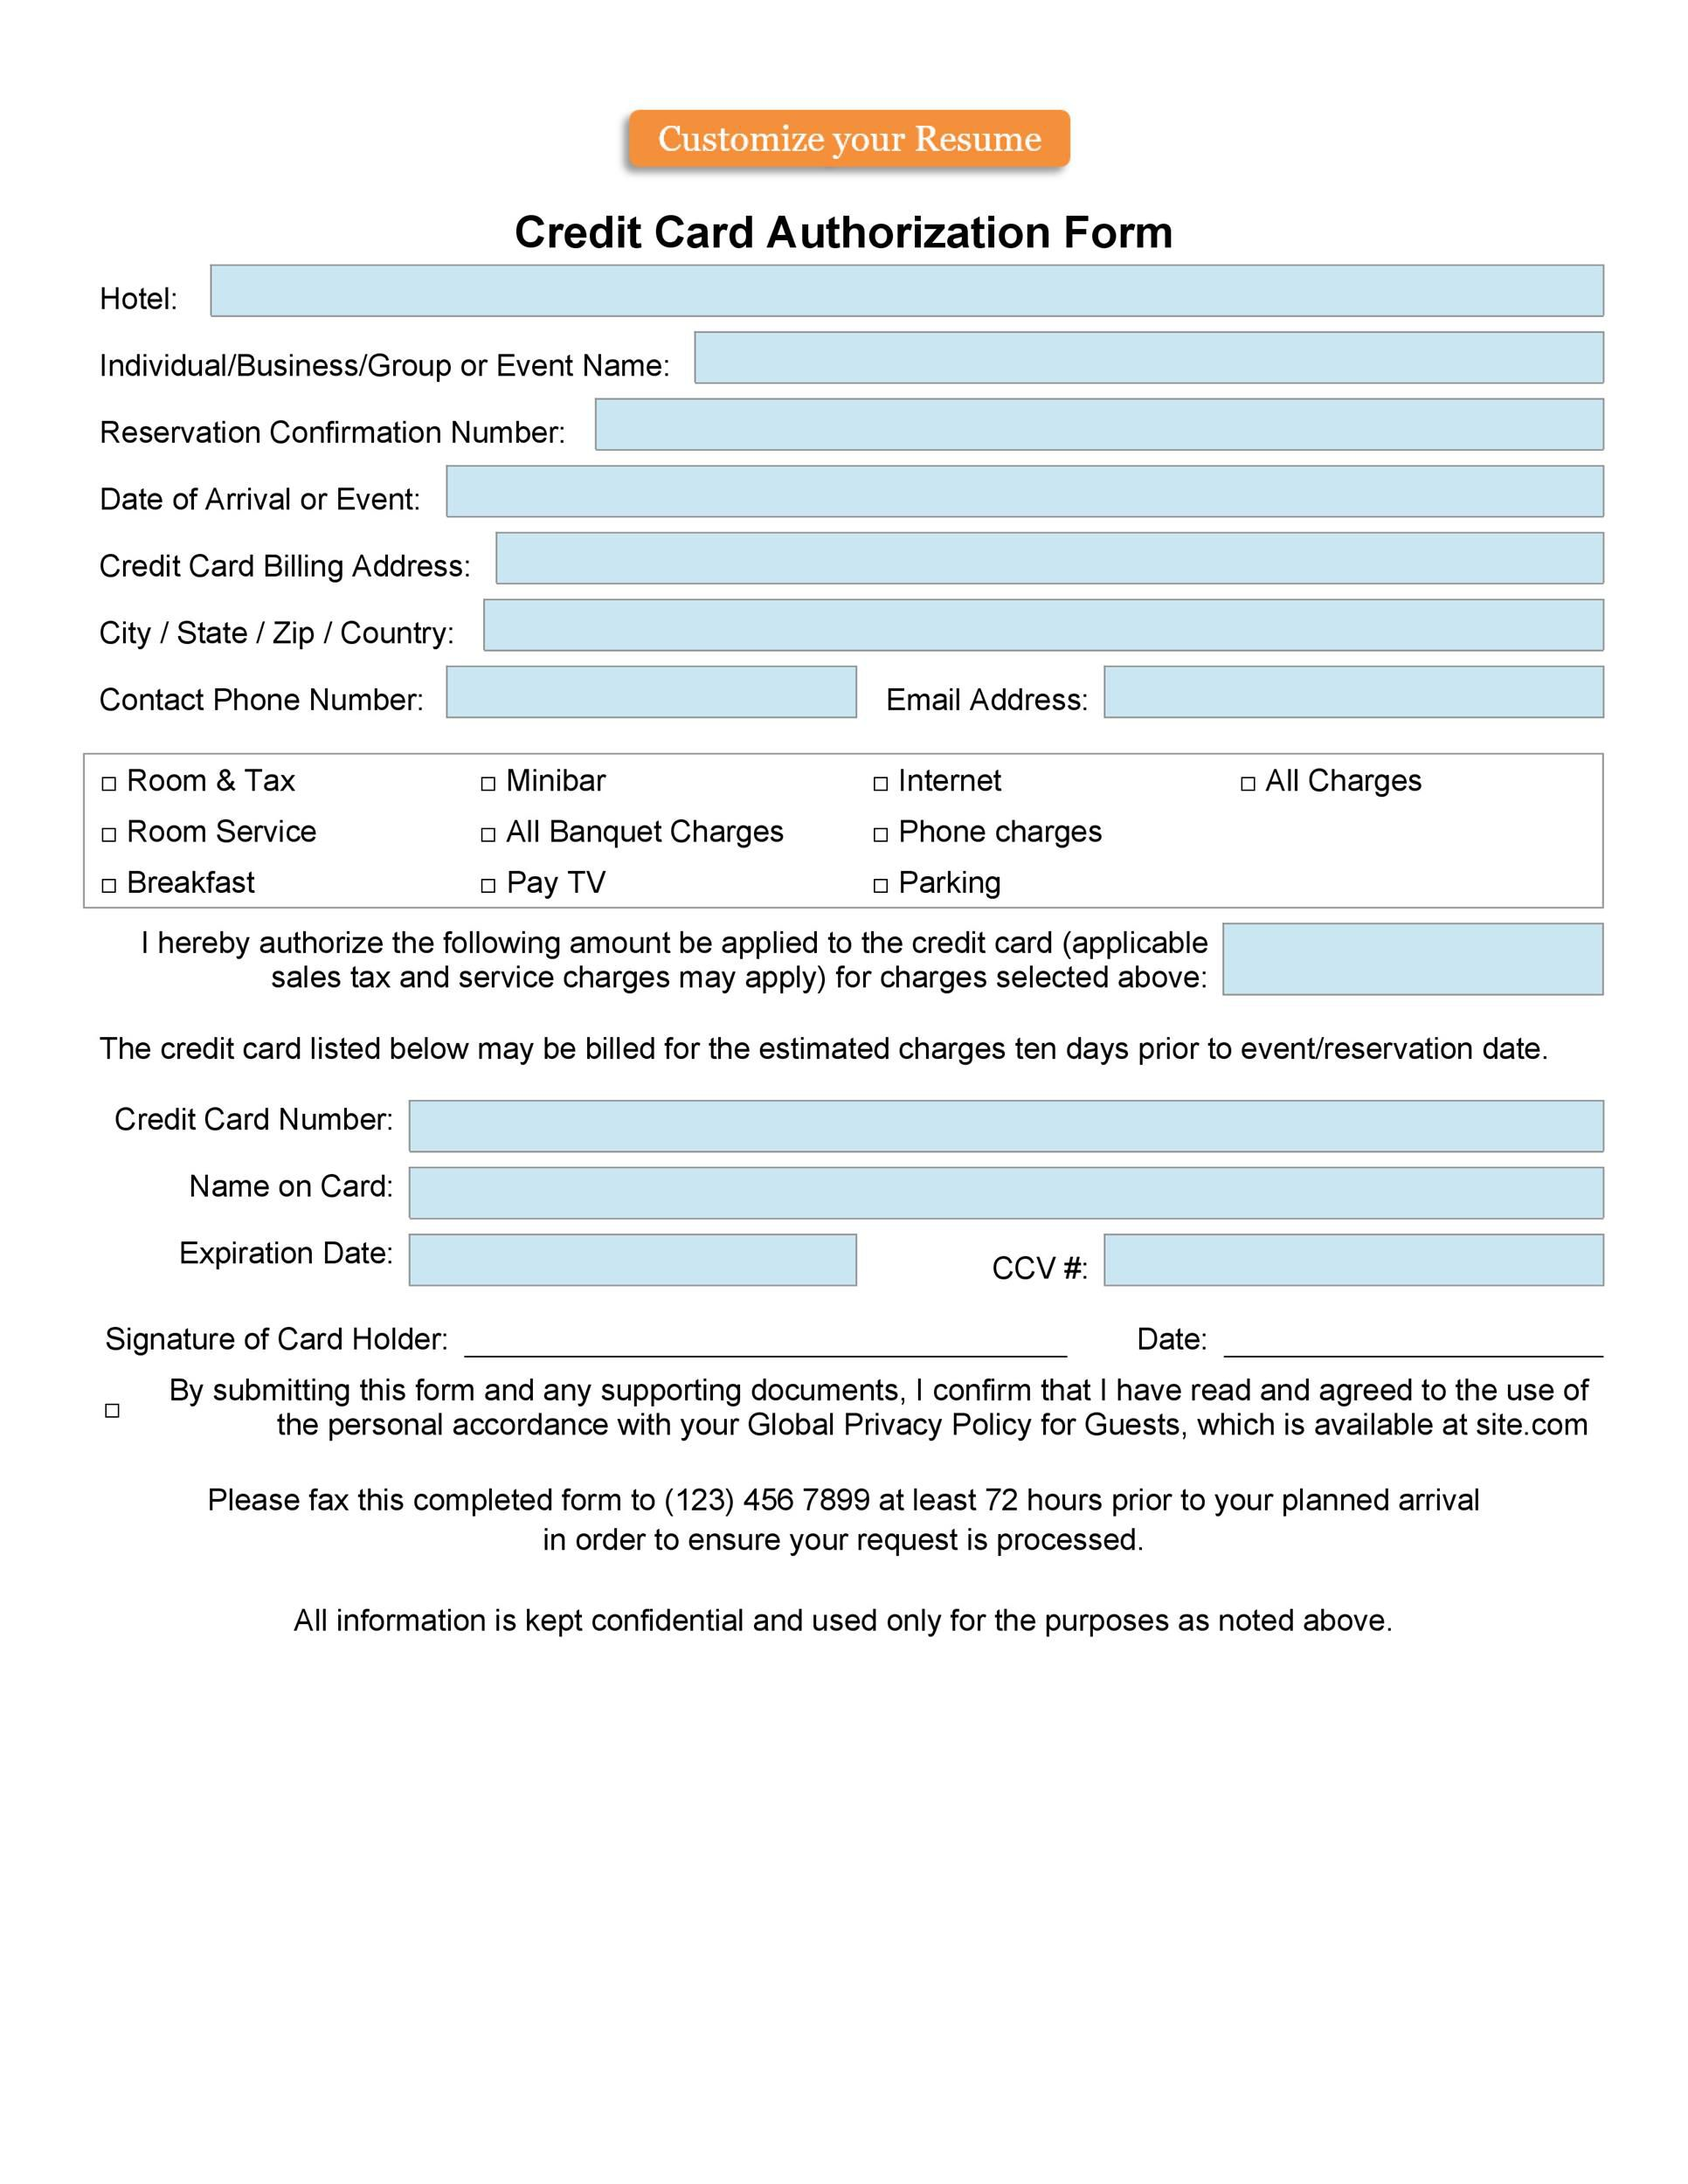 009 Impressive Credit Card Usage Request Form Template Example Full